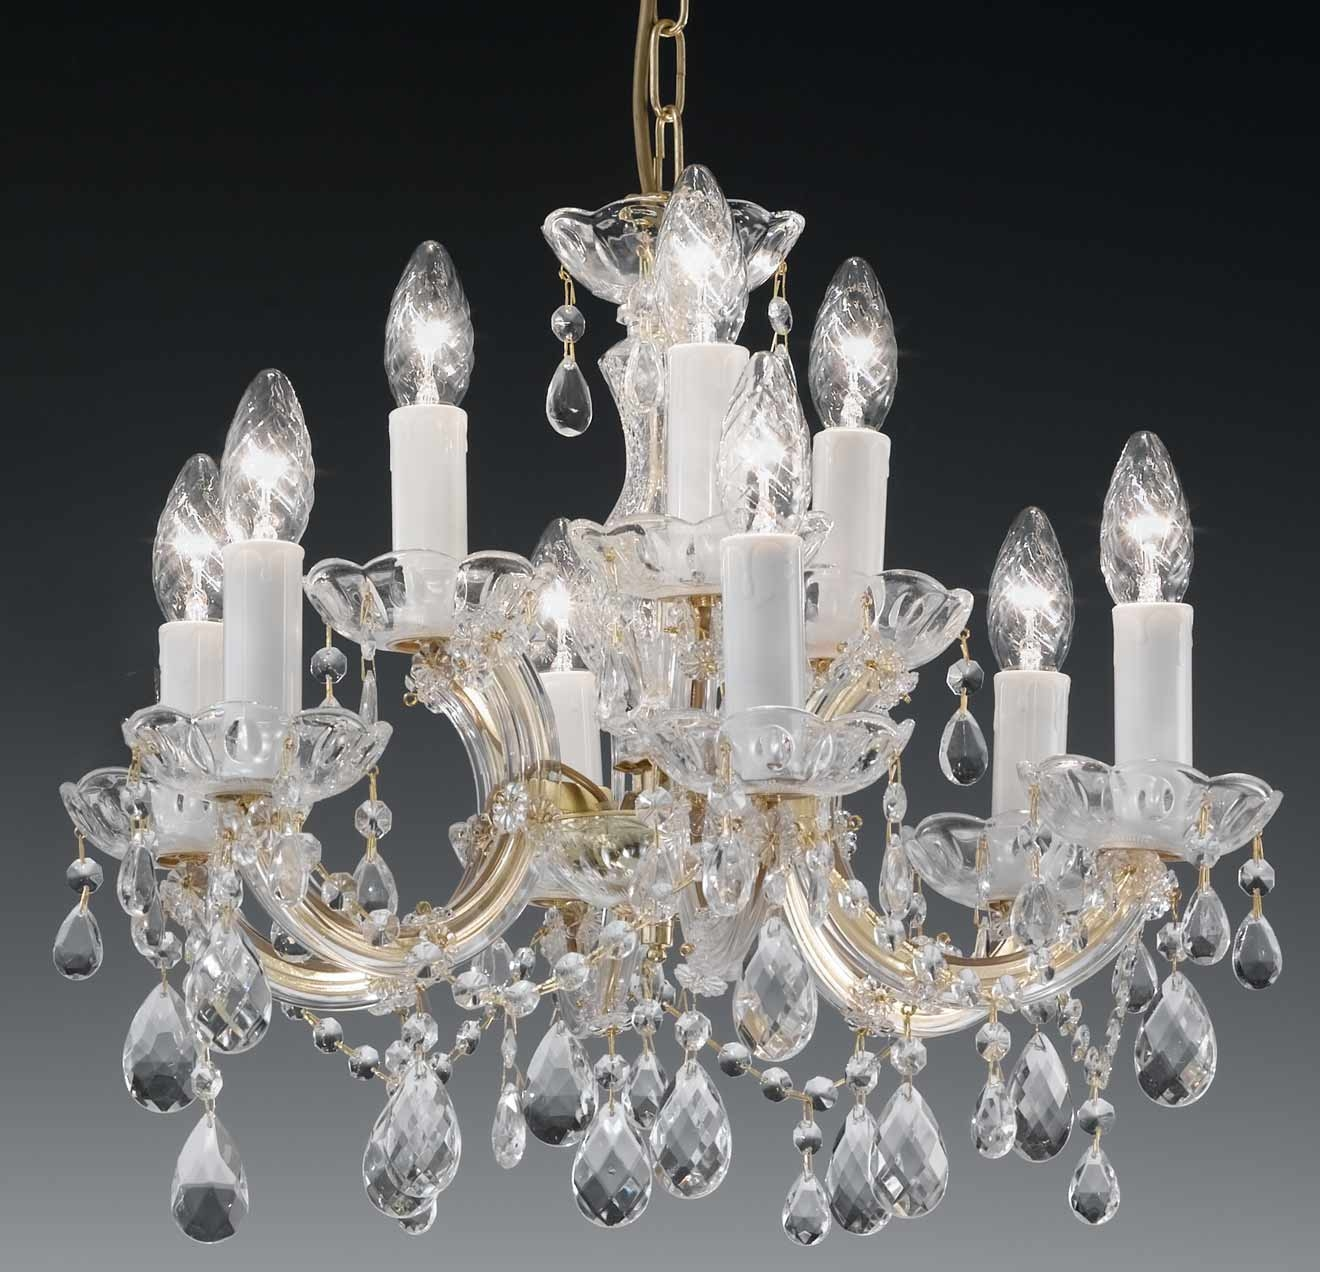 Decorating Ideas Cool Picture Of Luxury Round White Crystal Glass With Chandelier Accessories (Image 11 of 15)